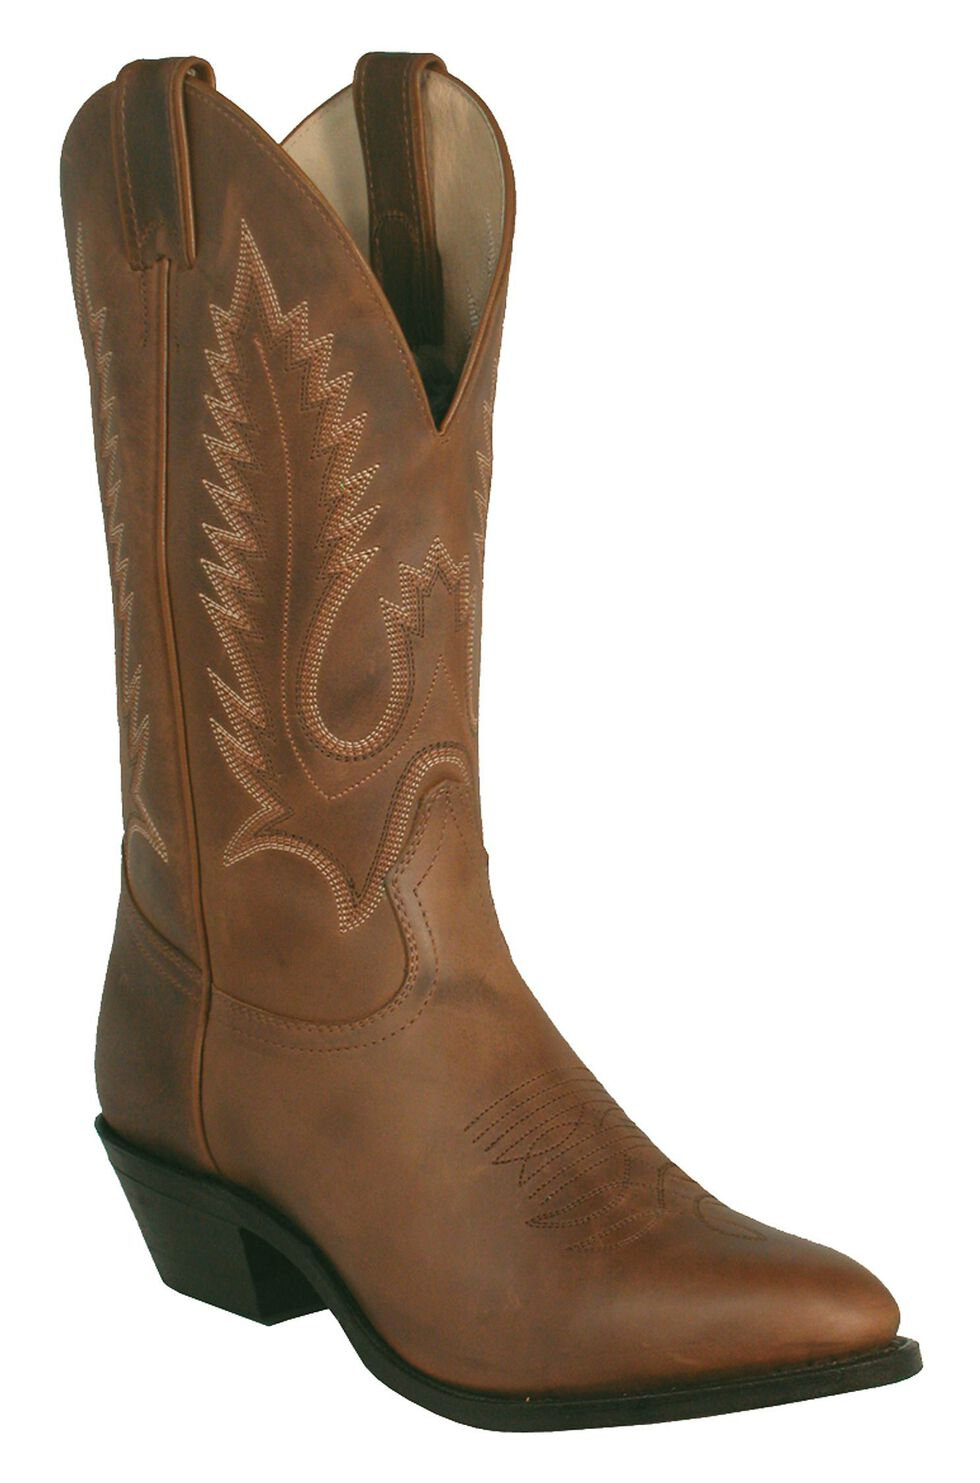 Boulet Challenger Cowboy Boots - Medium Toe, Golden Tan, hi-res